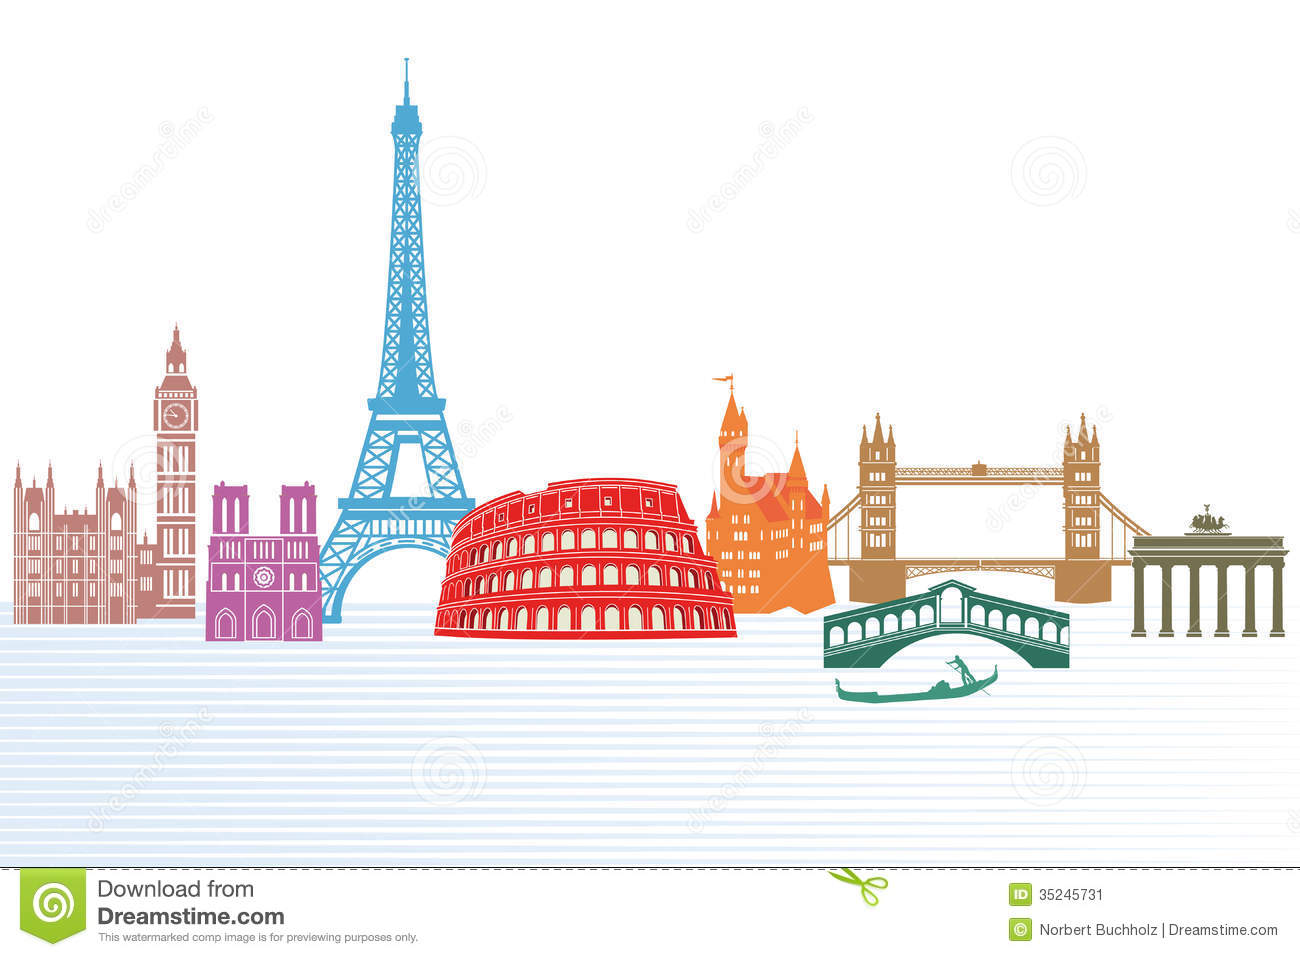 Illustrated set of landmarks from different European countries with ...